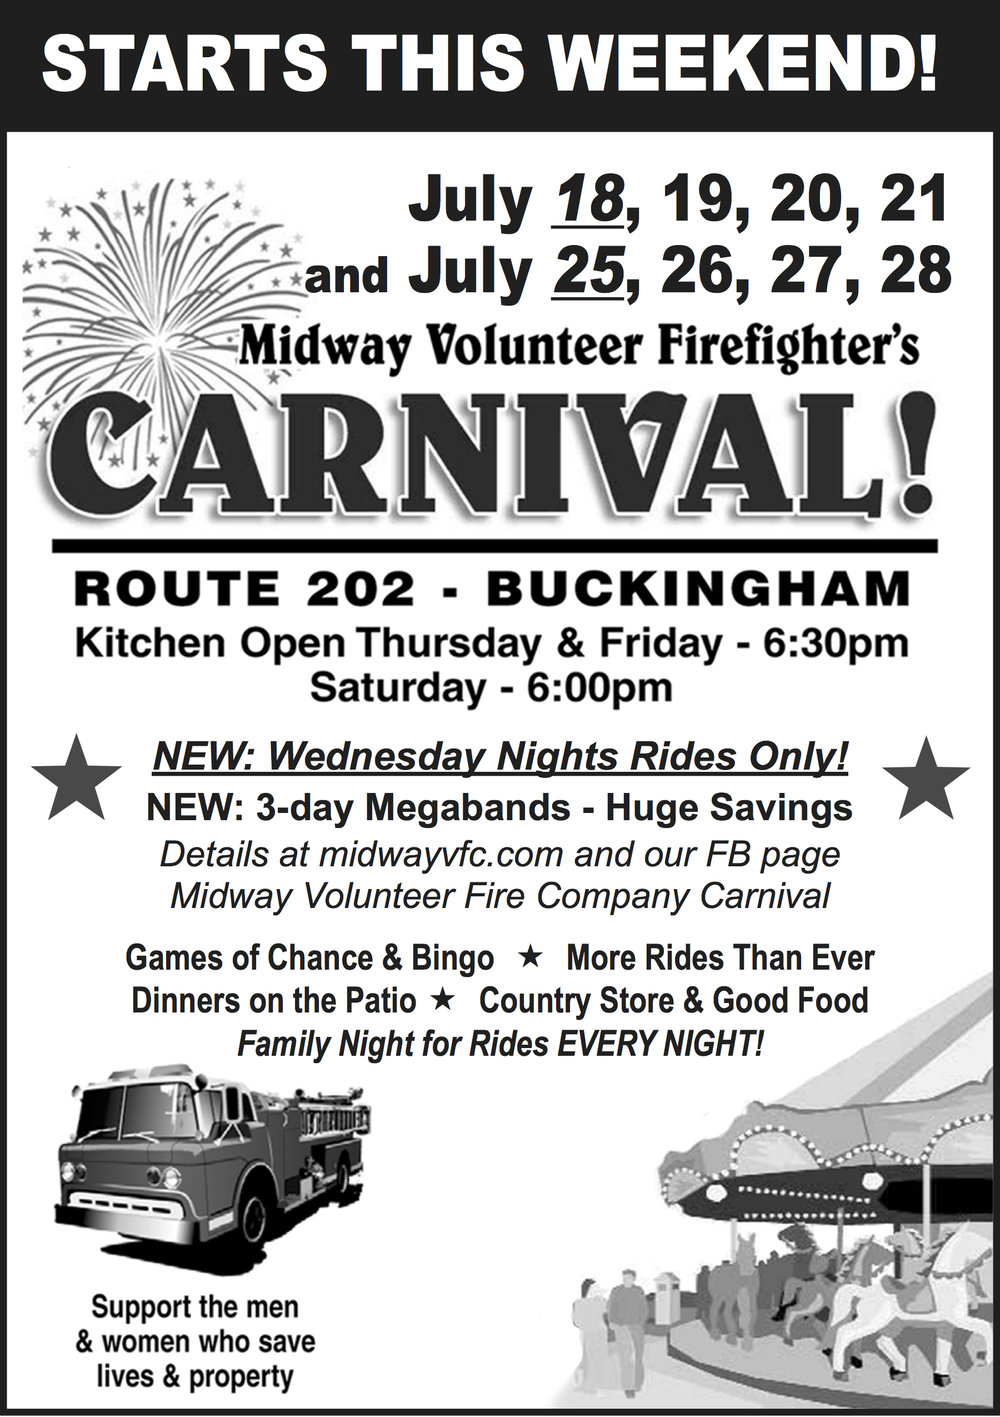 It is that time of year again. What is better than a warm summer night spent at the Carnival? A local tradition for over 85 years. We look forward to seeing you there!